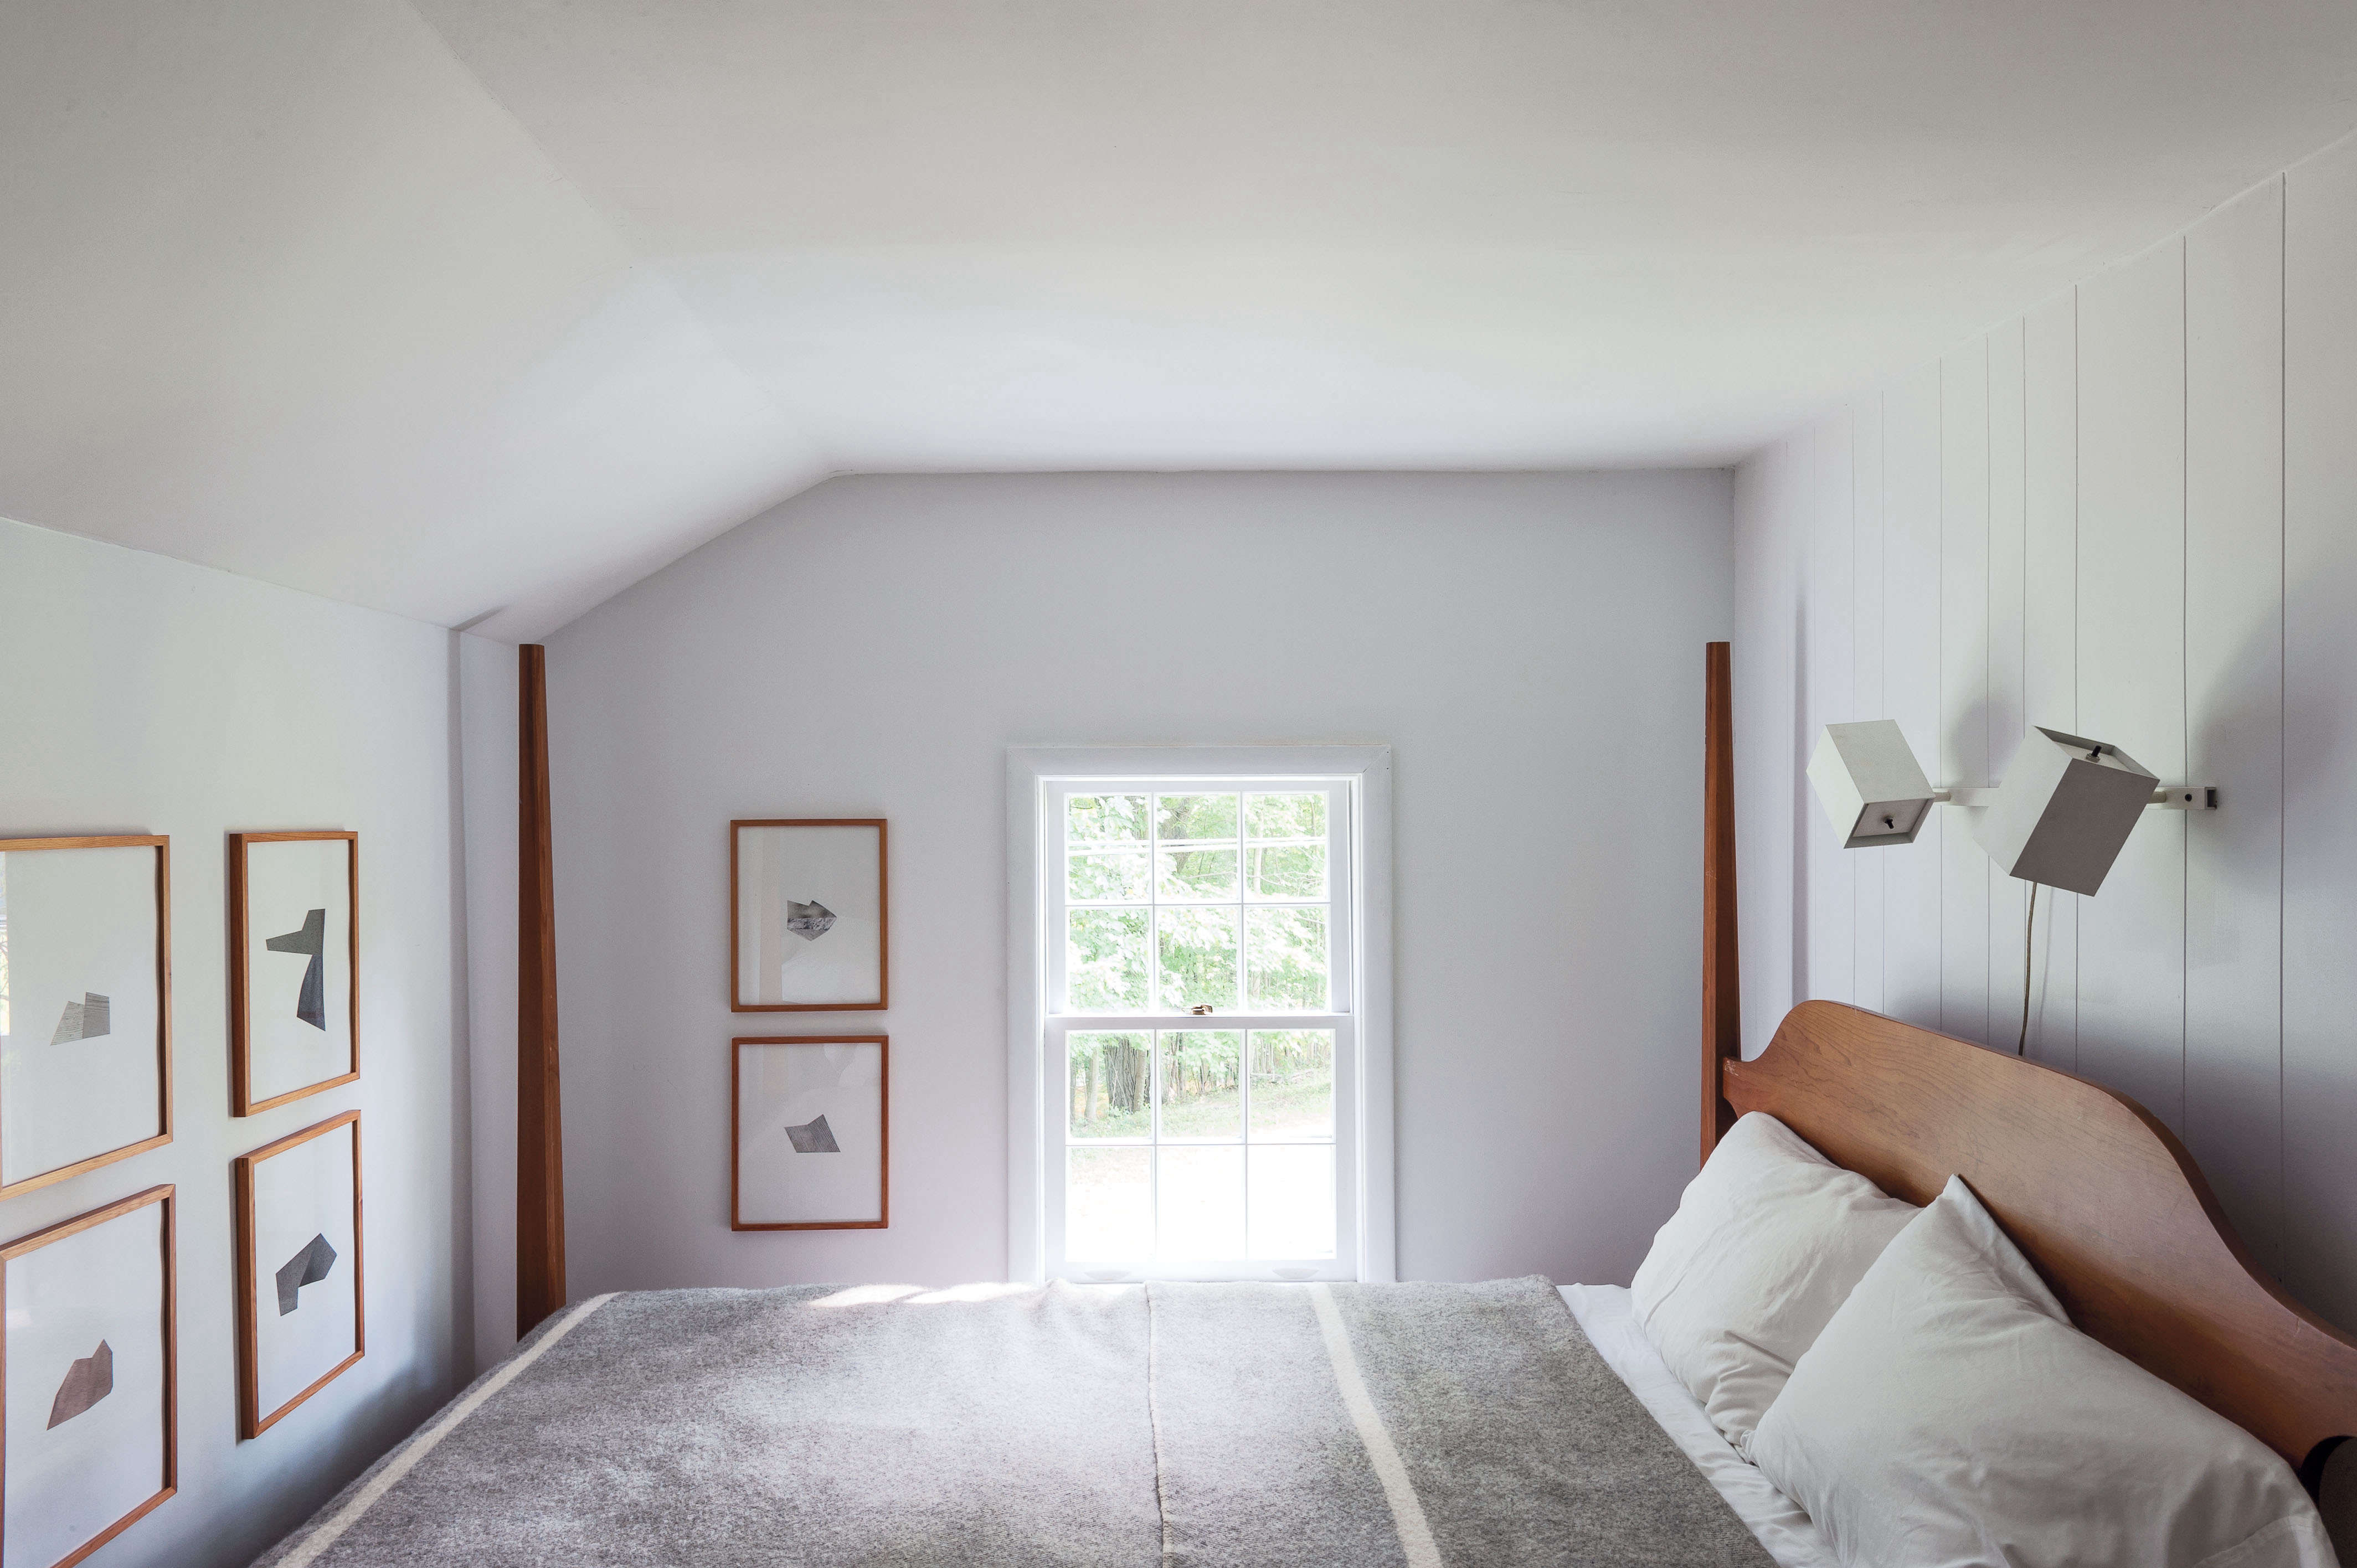 Workstead Bedroom in Gallatin, New York by Matthew Williams for Remodelista